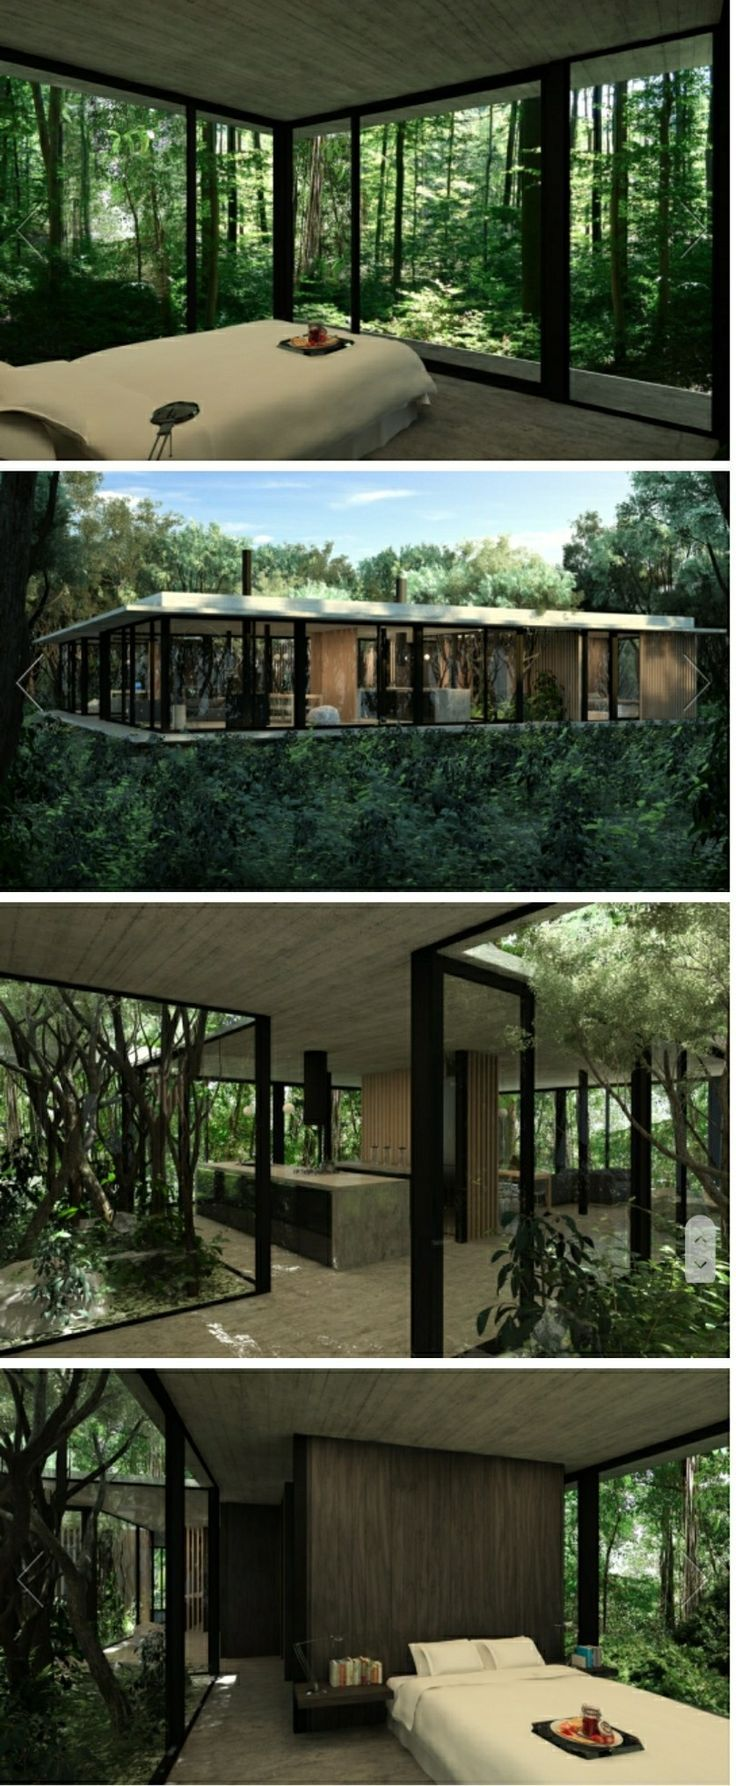 Outdoor terrace in the woods with interior furniture